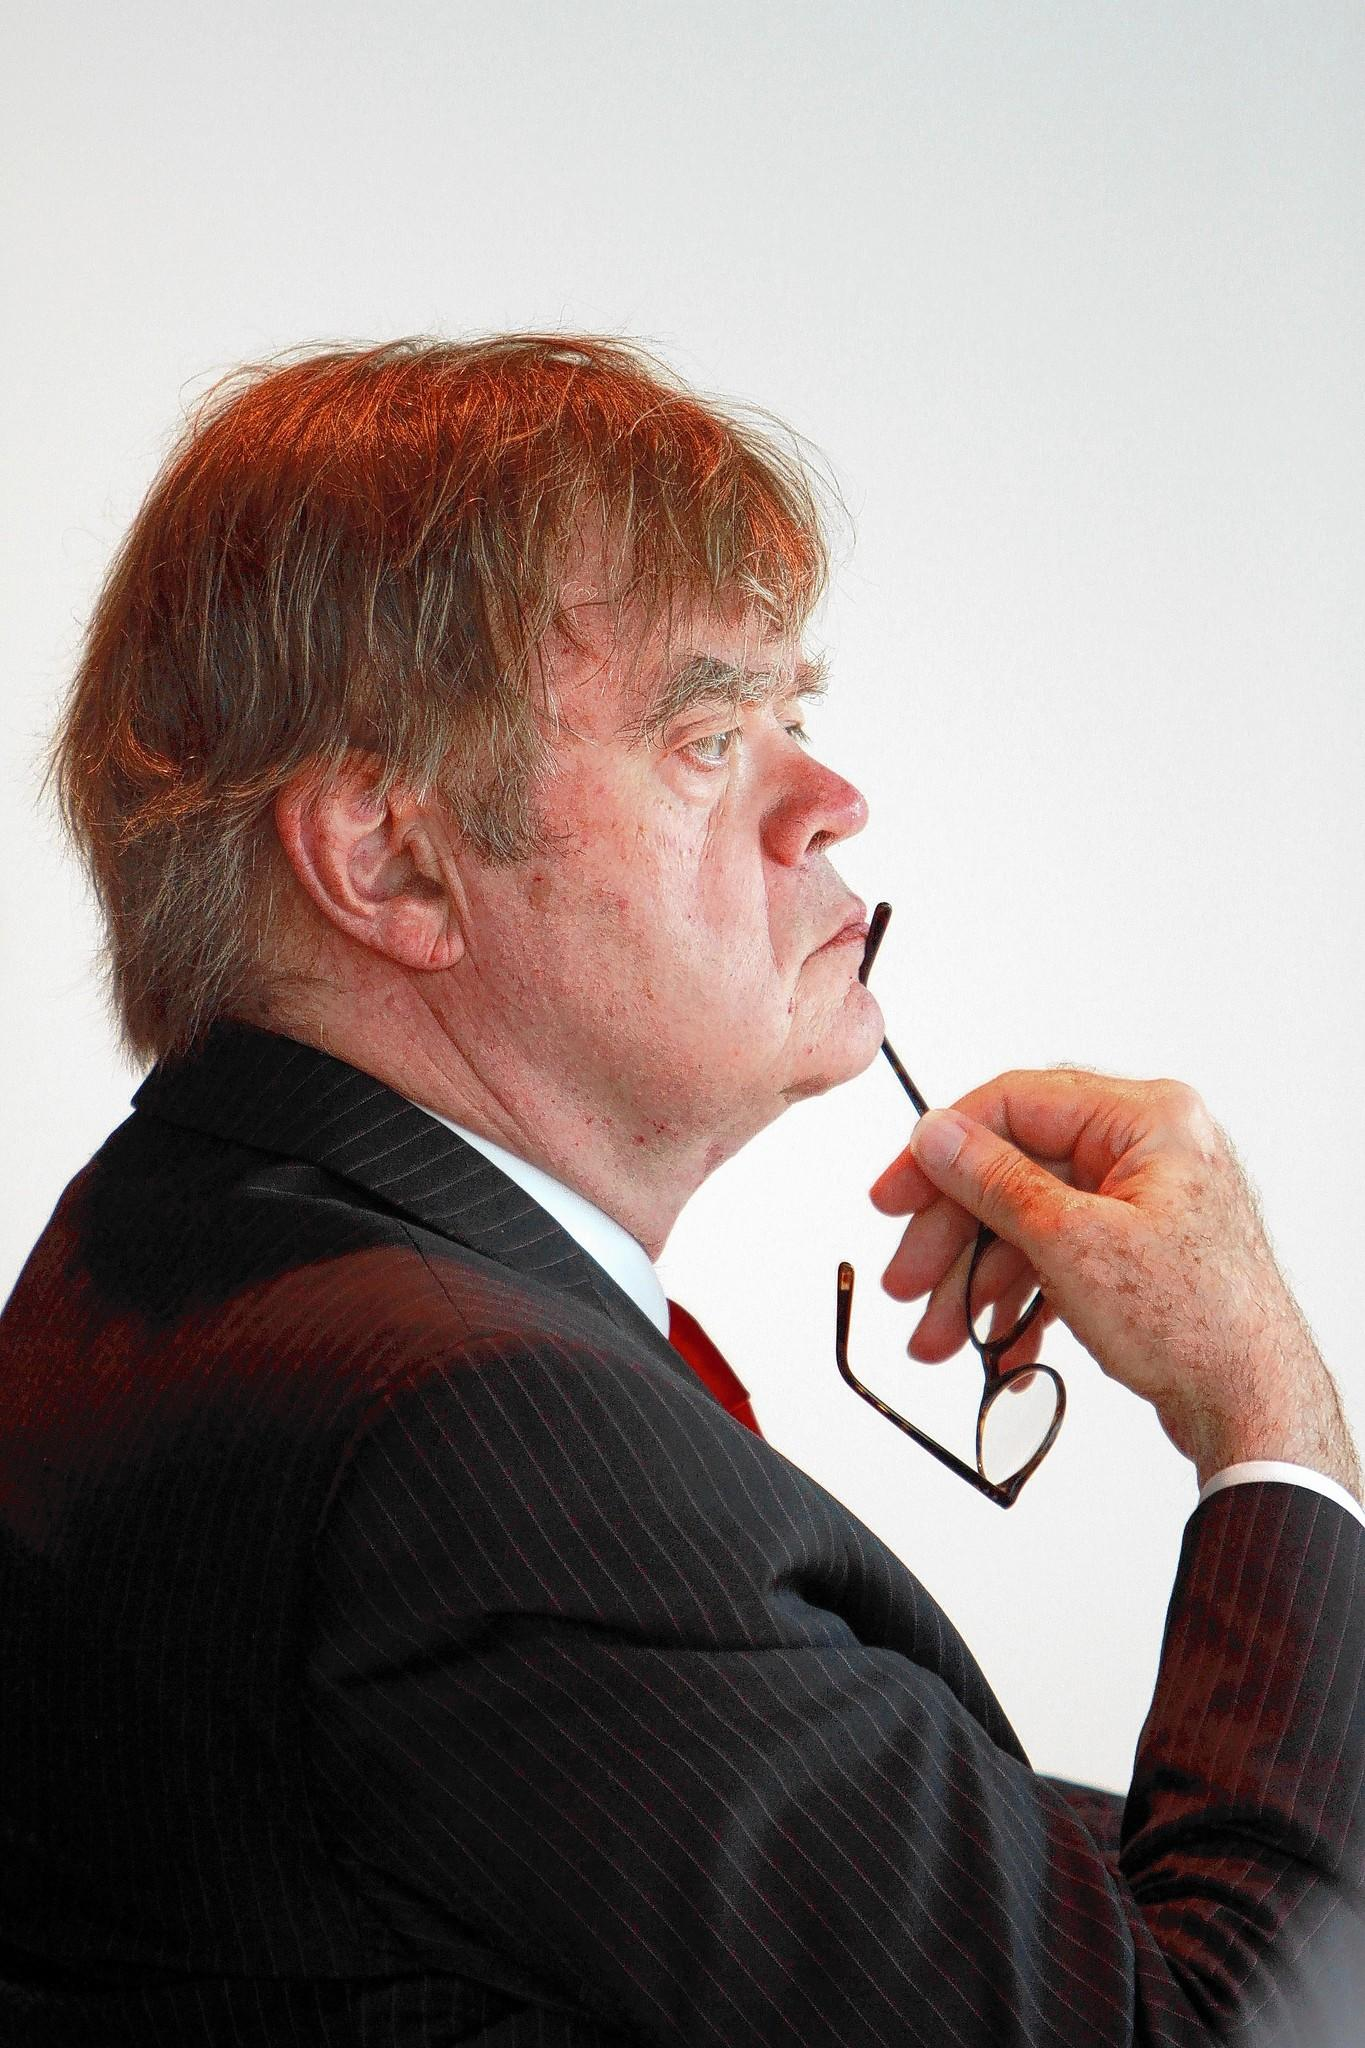 Garrison Keillor, Age of Excellence